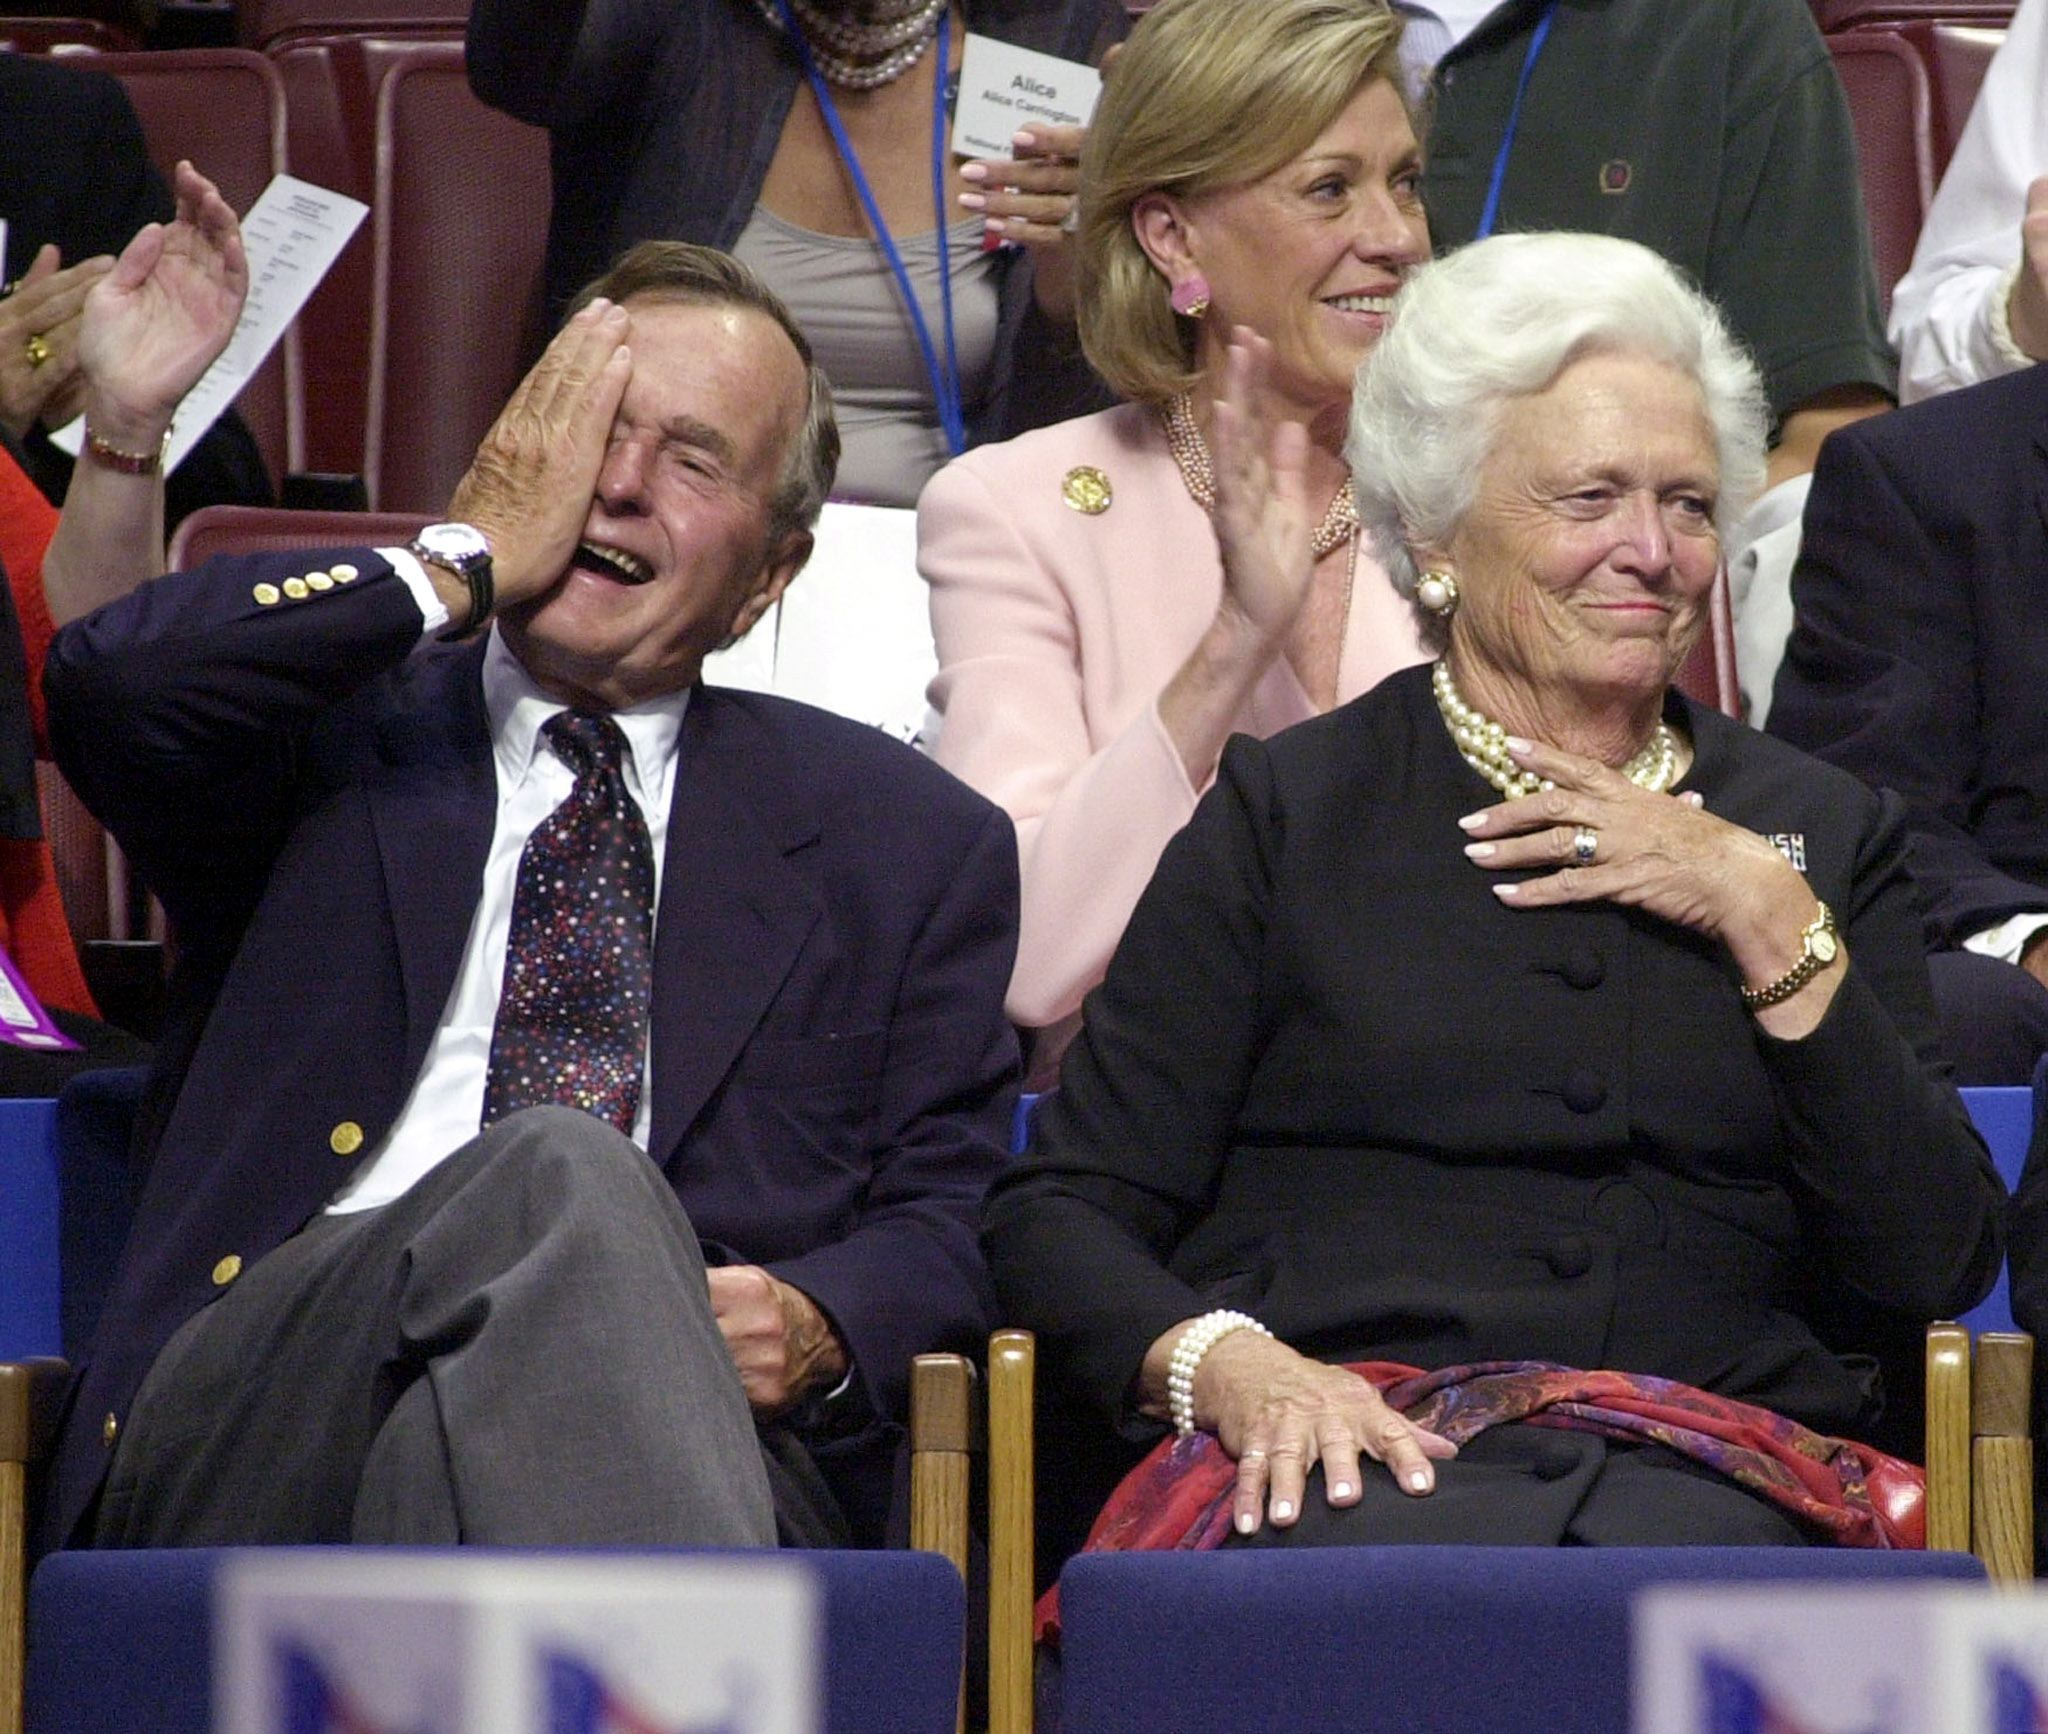 Former US President George Bush (L) and his wife Barbara laugh during the evening session of the 2000 Republican National Convention in Philadelphia's First Union Center 31 July, 2000. The Bush family is on hand this week to see their son receive the nomination of the Republican Party for the 2000 presidential election. (ELECTRONIC IMAGE) AFP PHOTO/Roberto SCHMIDT (Photo credit should read ROBERTO SCHMIDT/AFP/Getty Images)